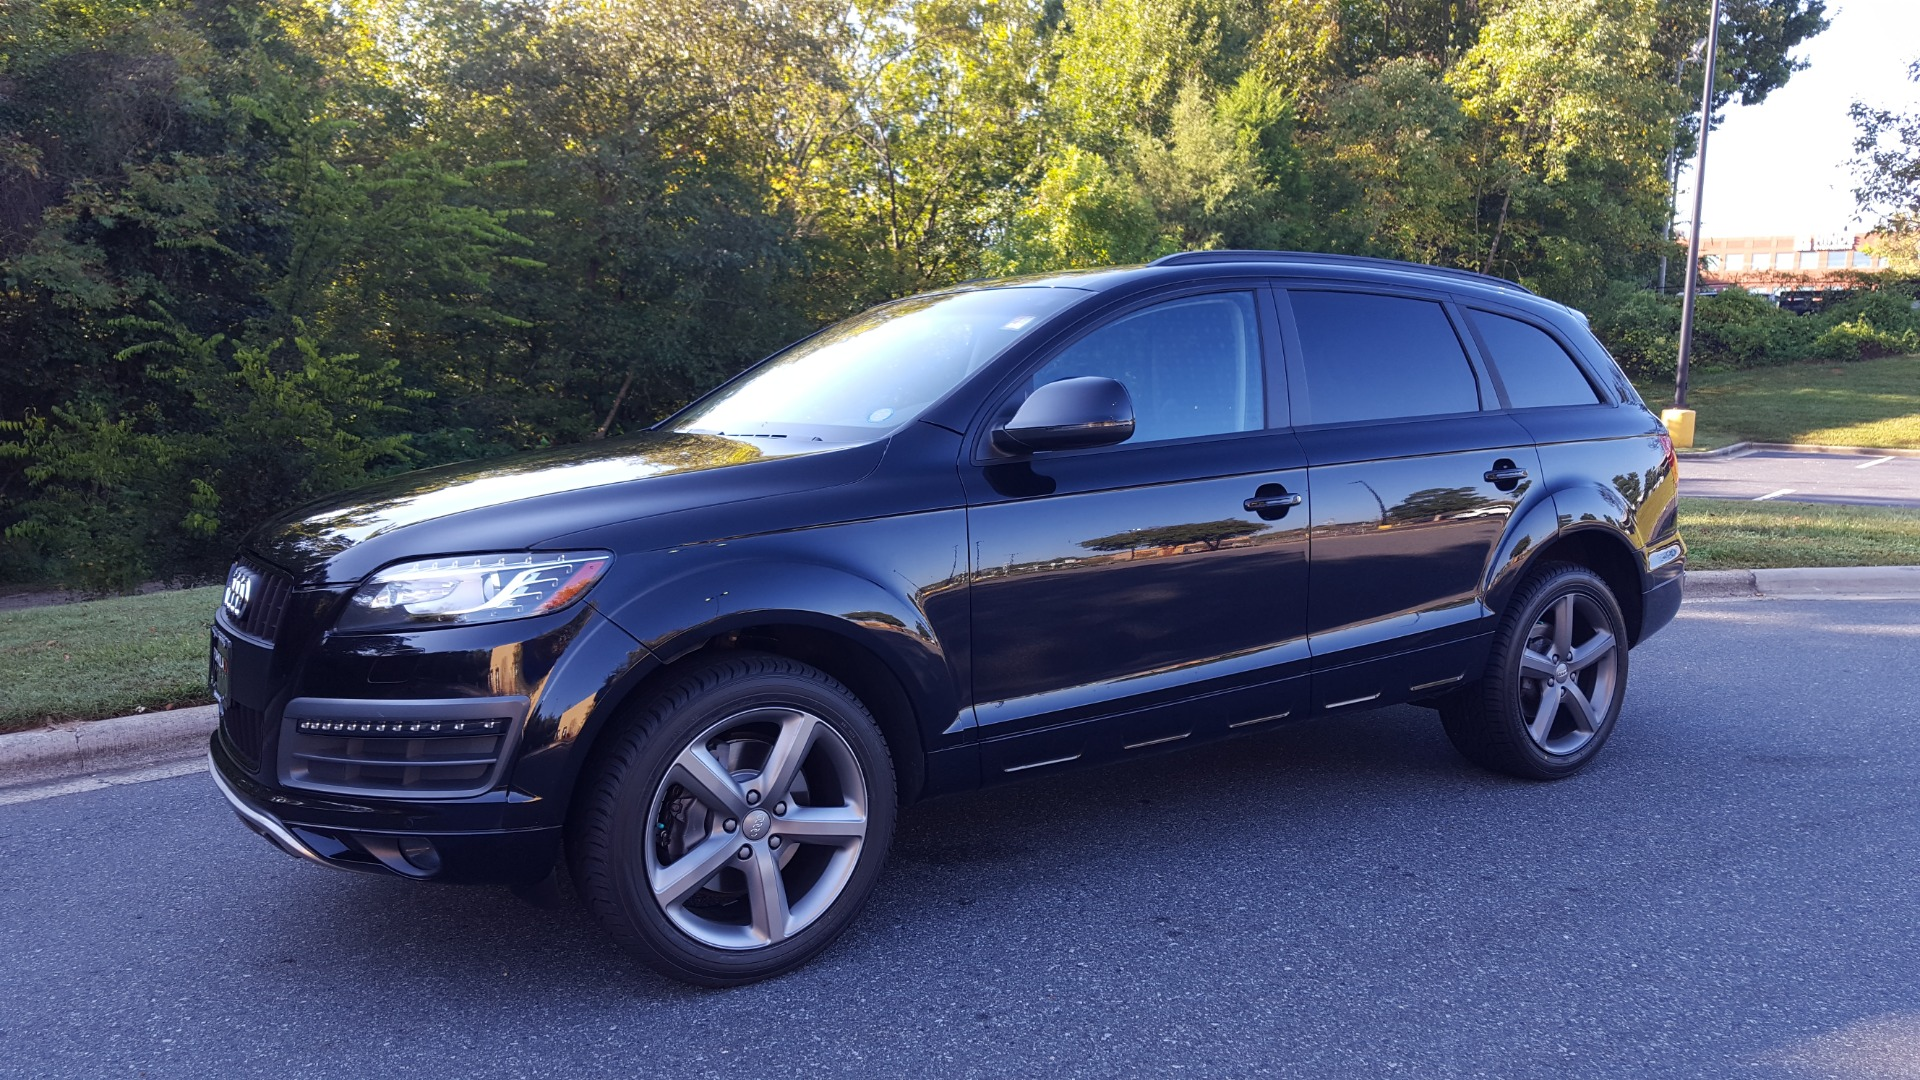 Used 2015 Audi Q7 3.0T PREMIUM PLUS TIPTRONIC / NAV / OFFROAD PLUS / WARM WEATHER / COLD WEAT for sale Sold at Formula Imports in Charlotte NC 28227 1